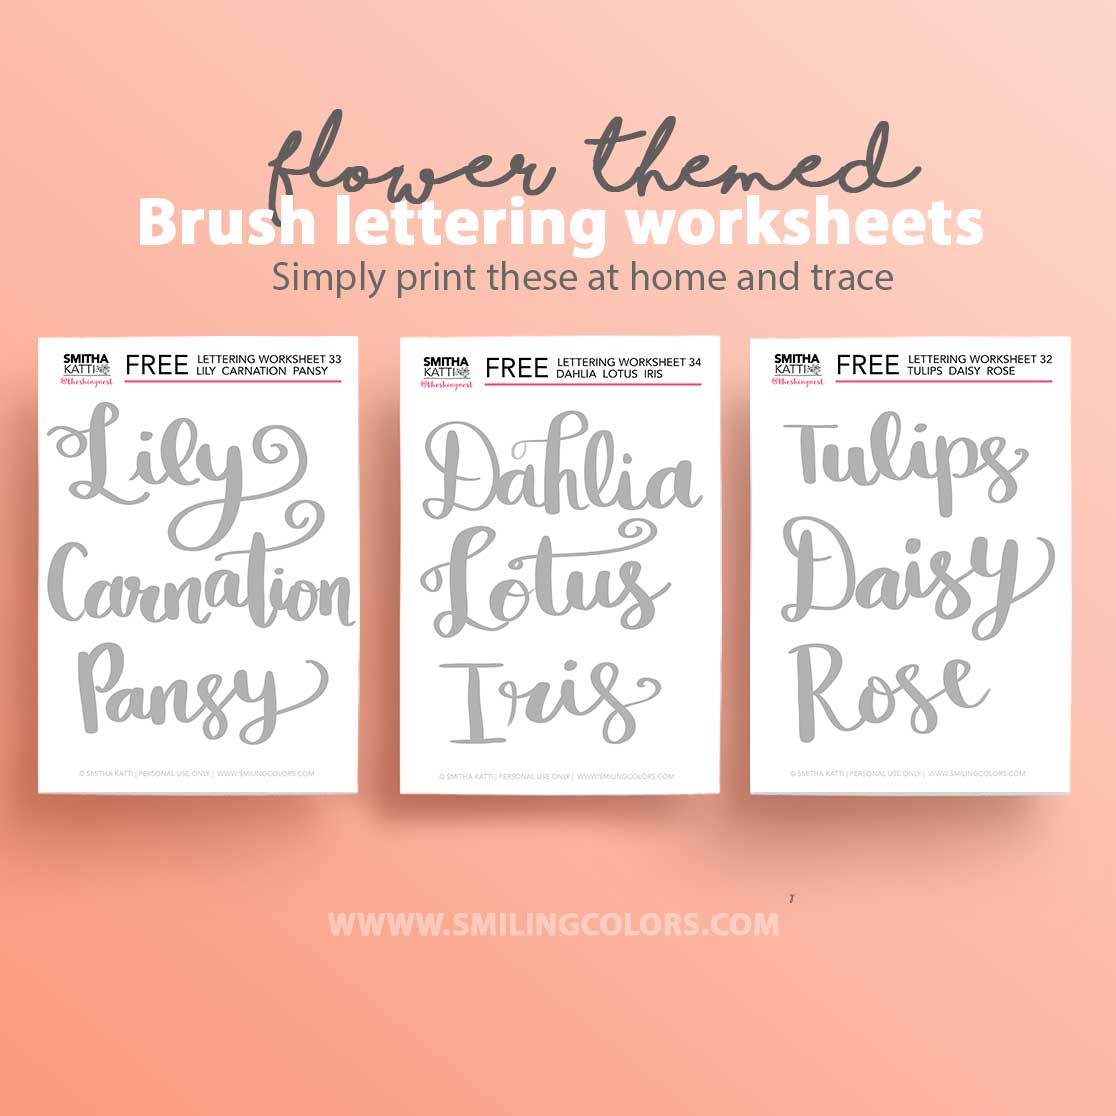 graphic regarding Calligraphy Practice Sheets Printable called Flower themed brush lettering prepare sheets printable free of charge